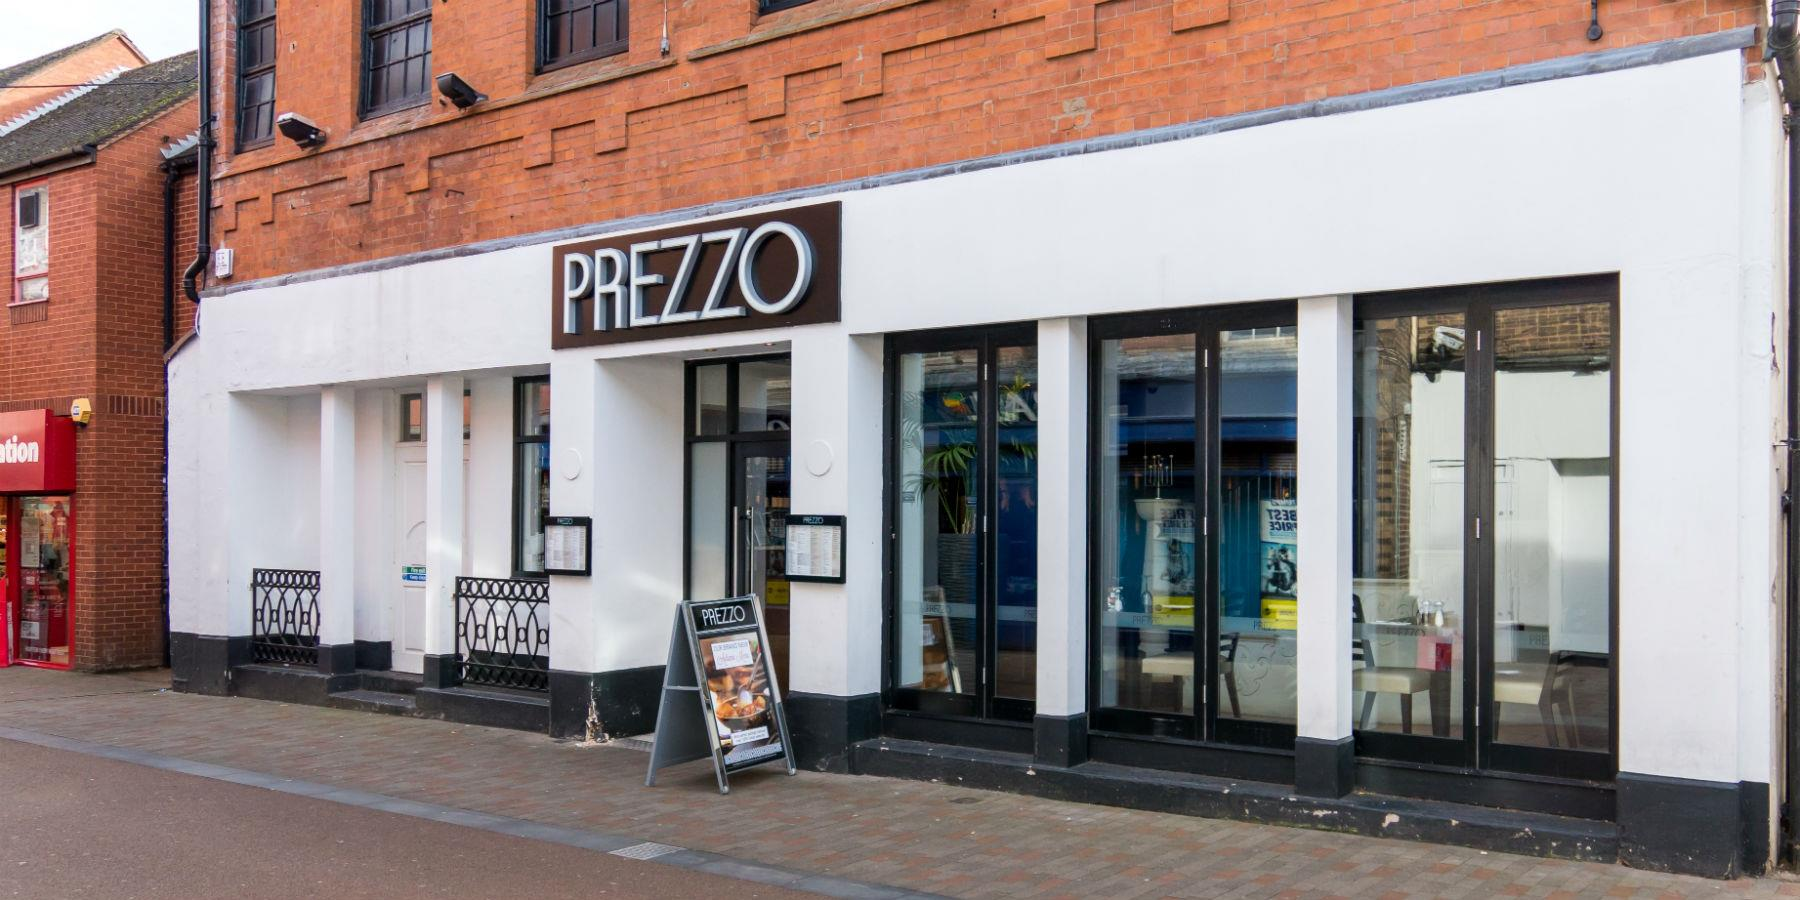 Prezzo, Restaurants - Eating and Drinking in Leicester